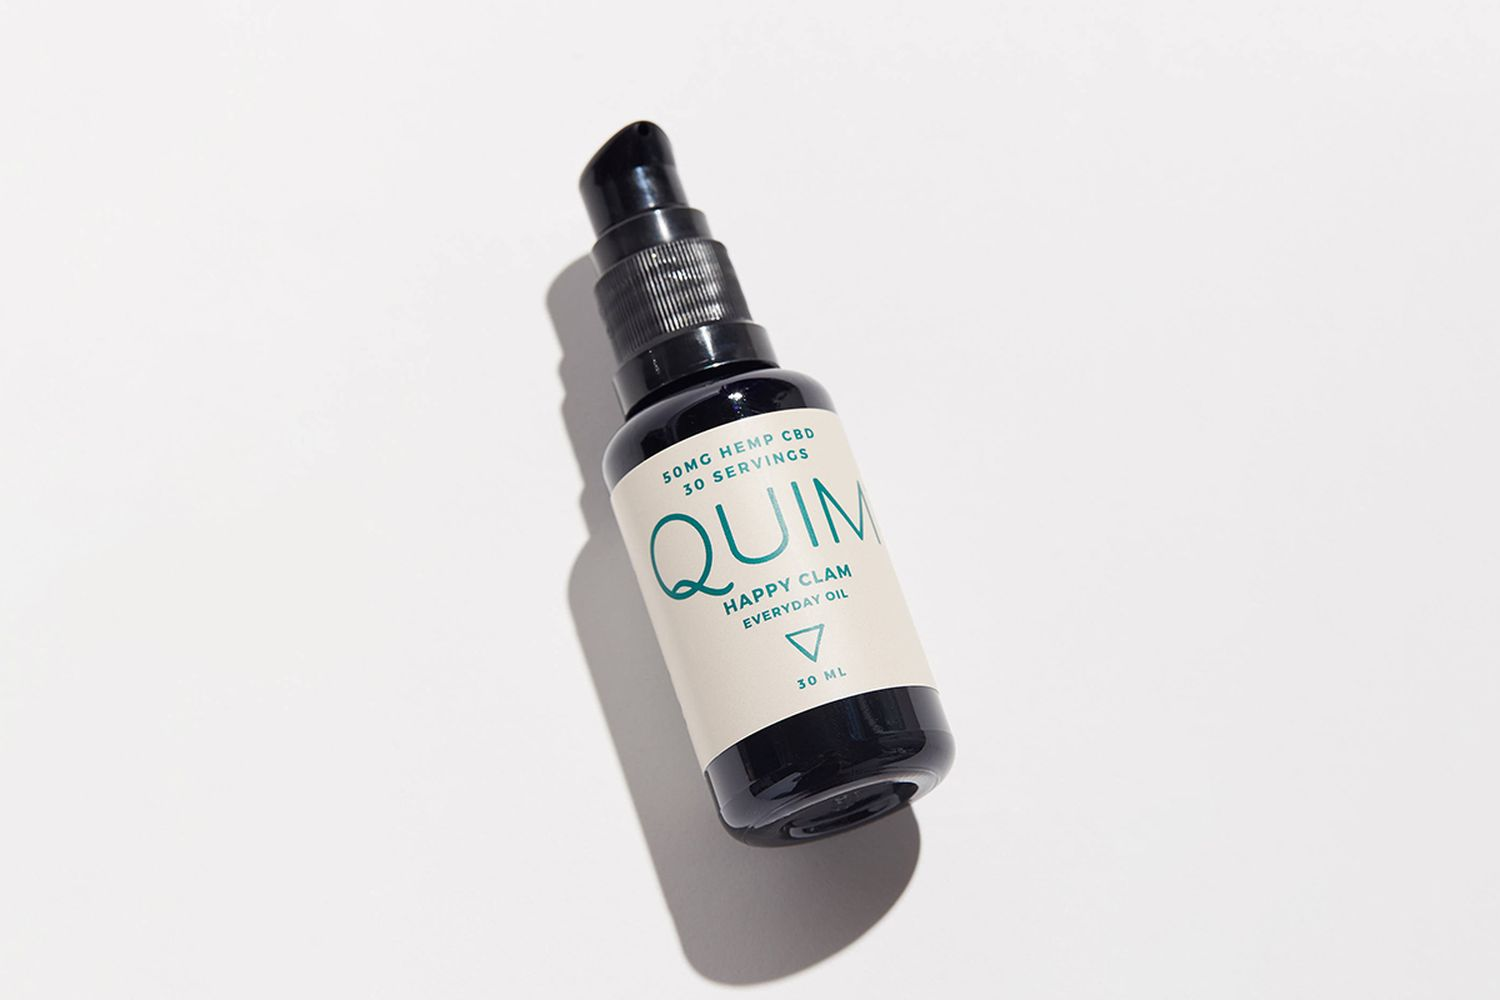 Happy Clam Everyday CBD Oil